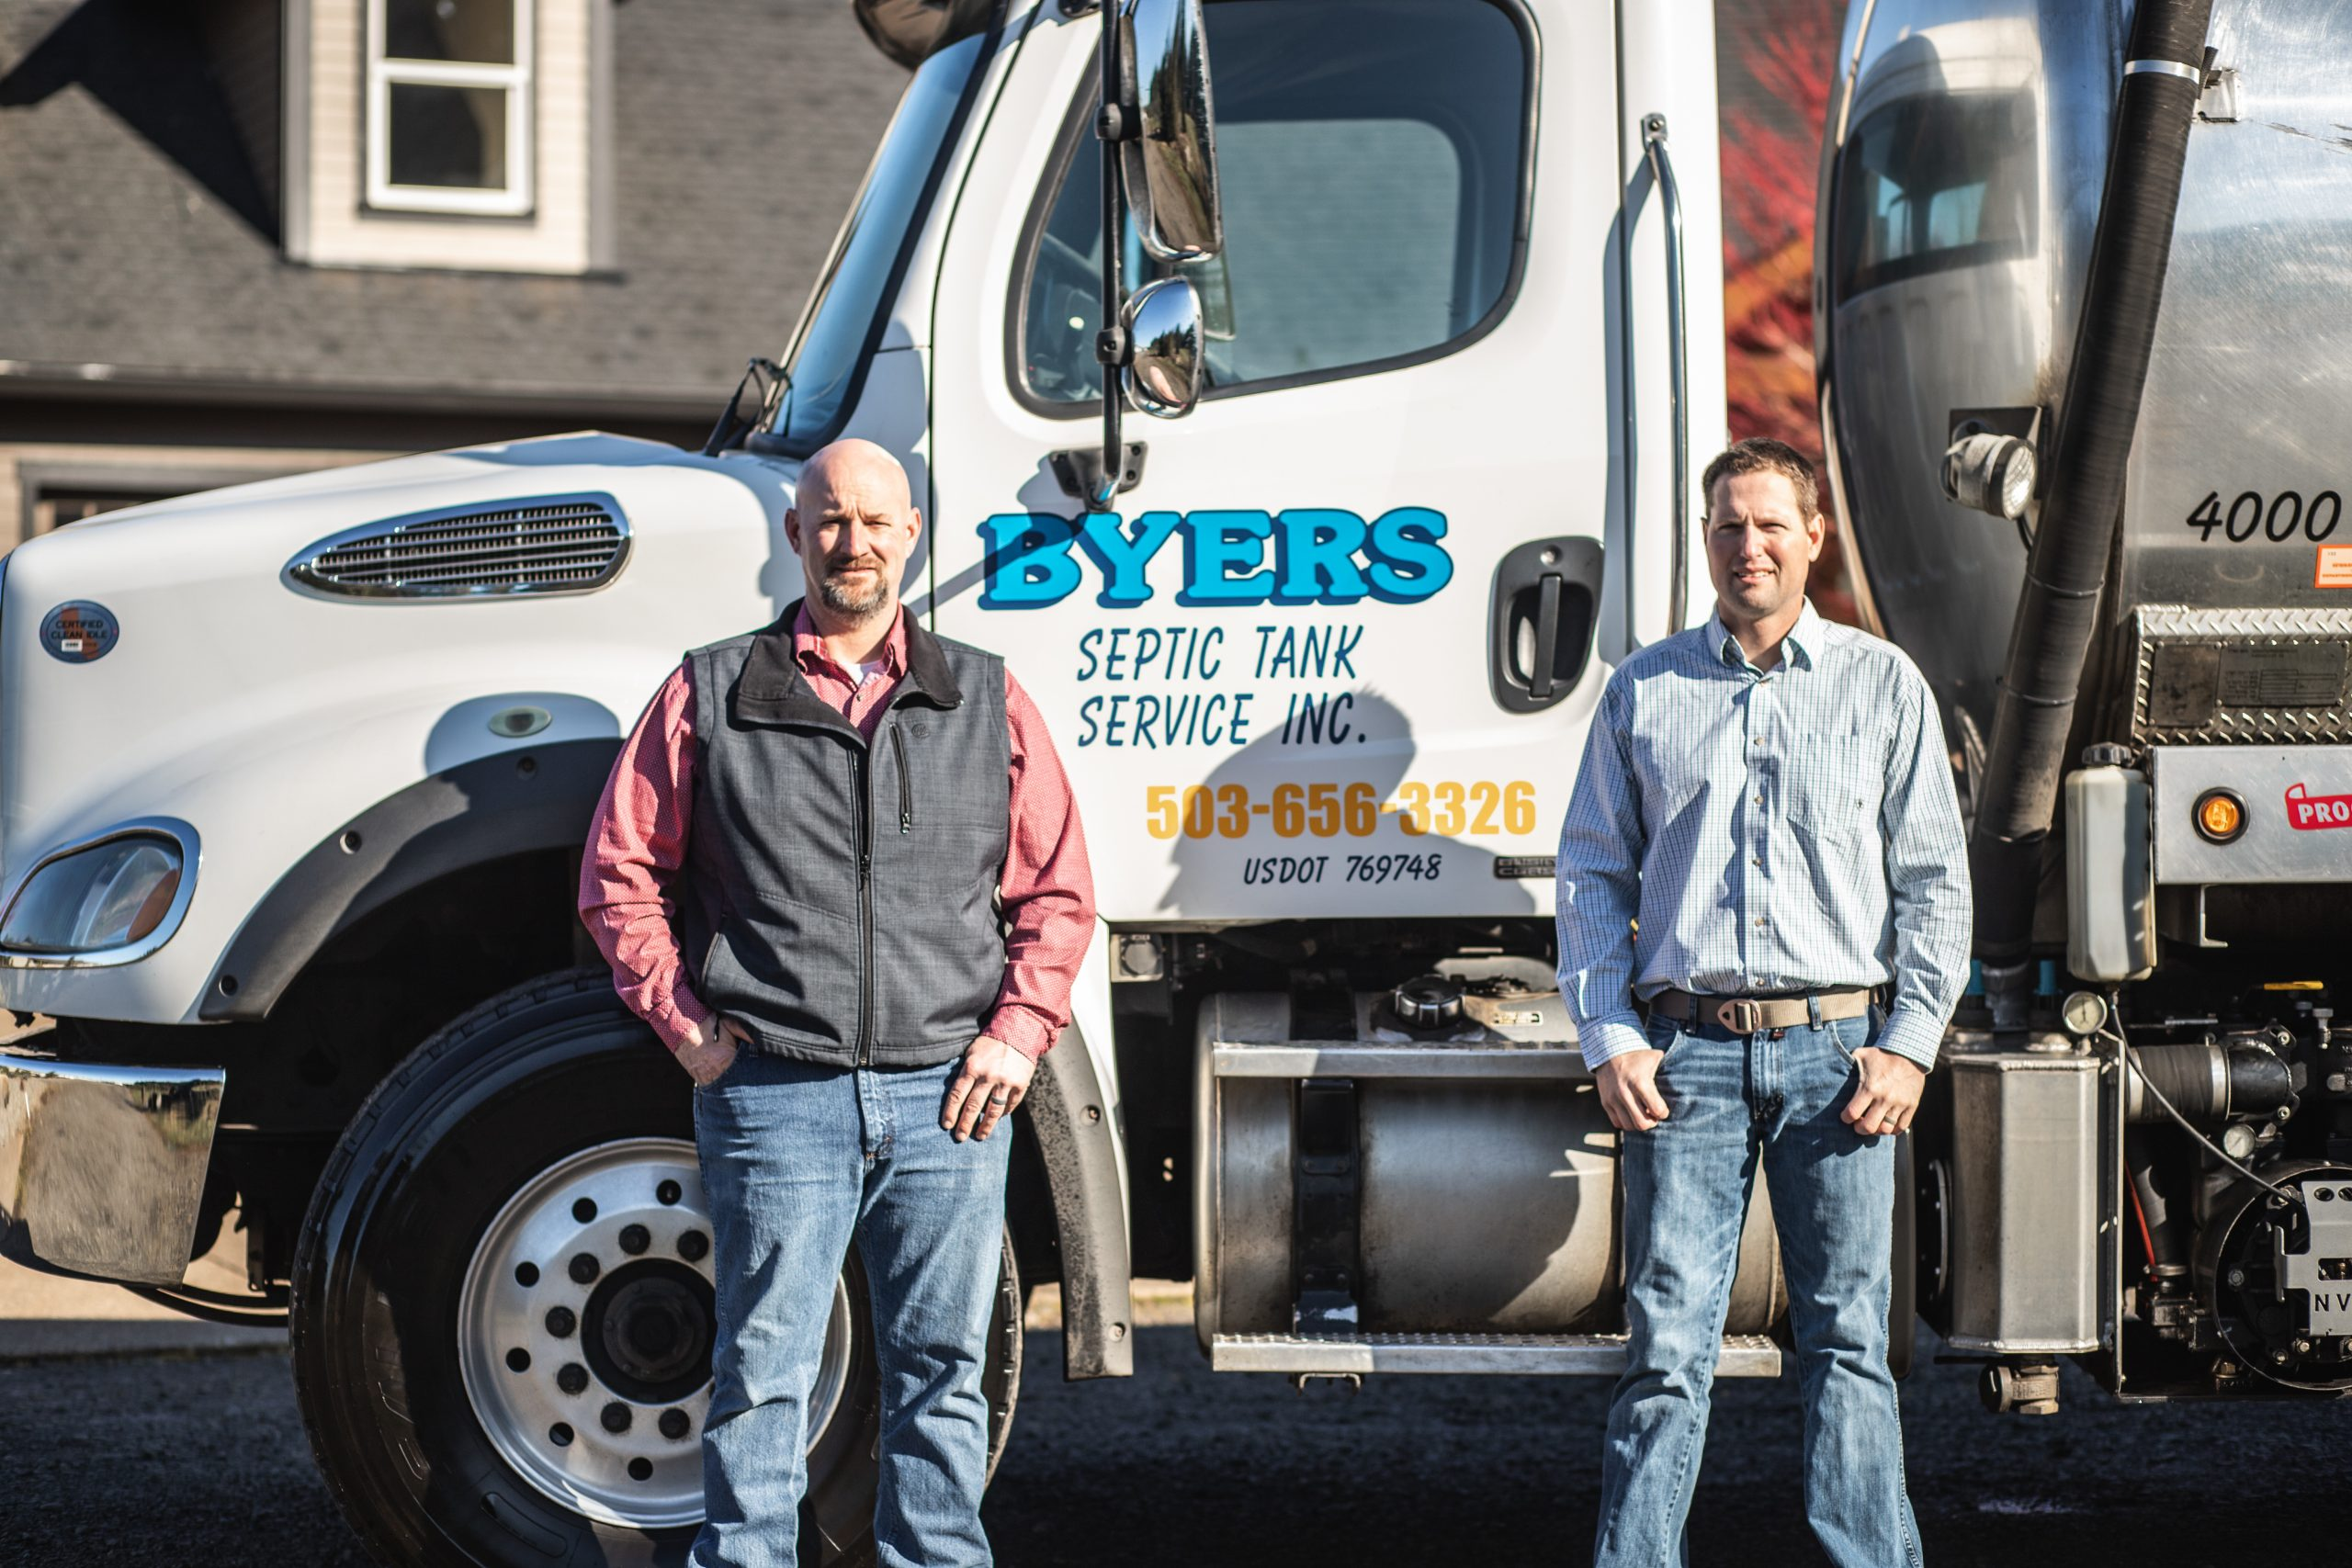 Image of Byers Estacada Septic Tank Services at work